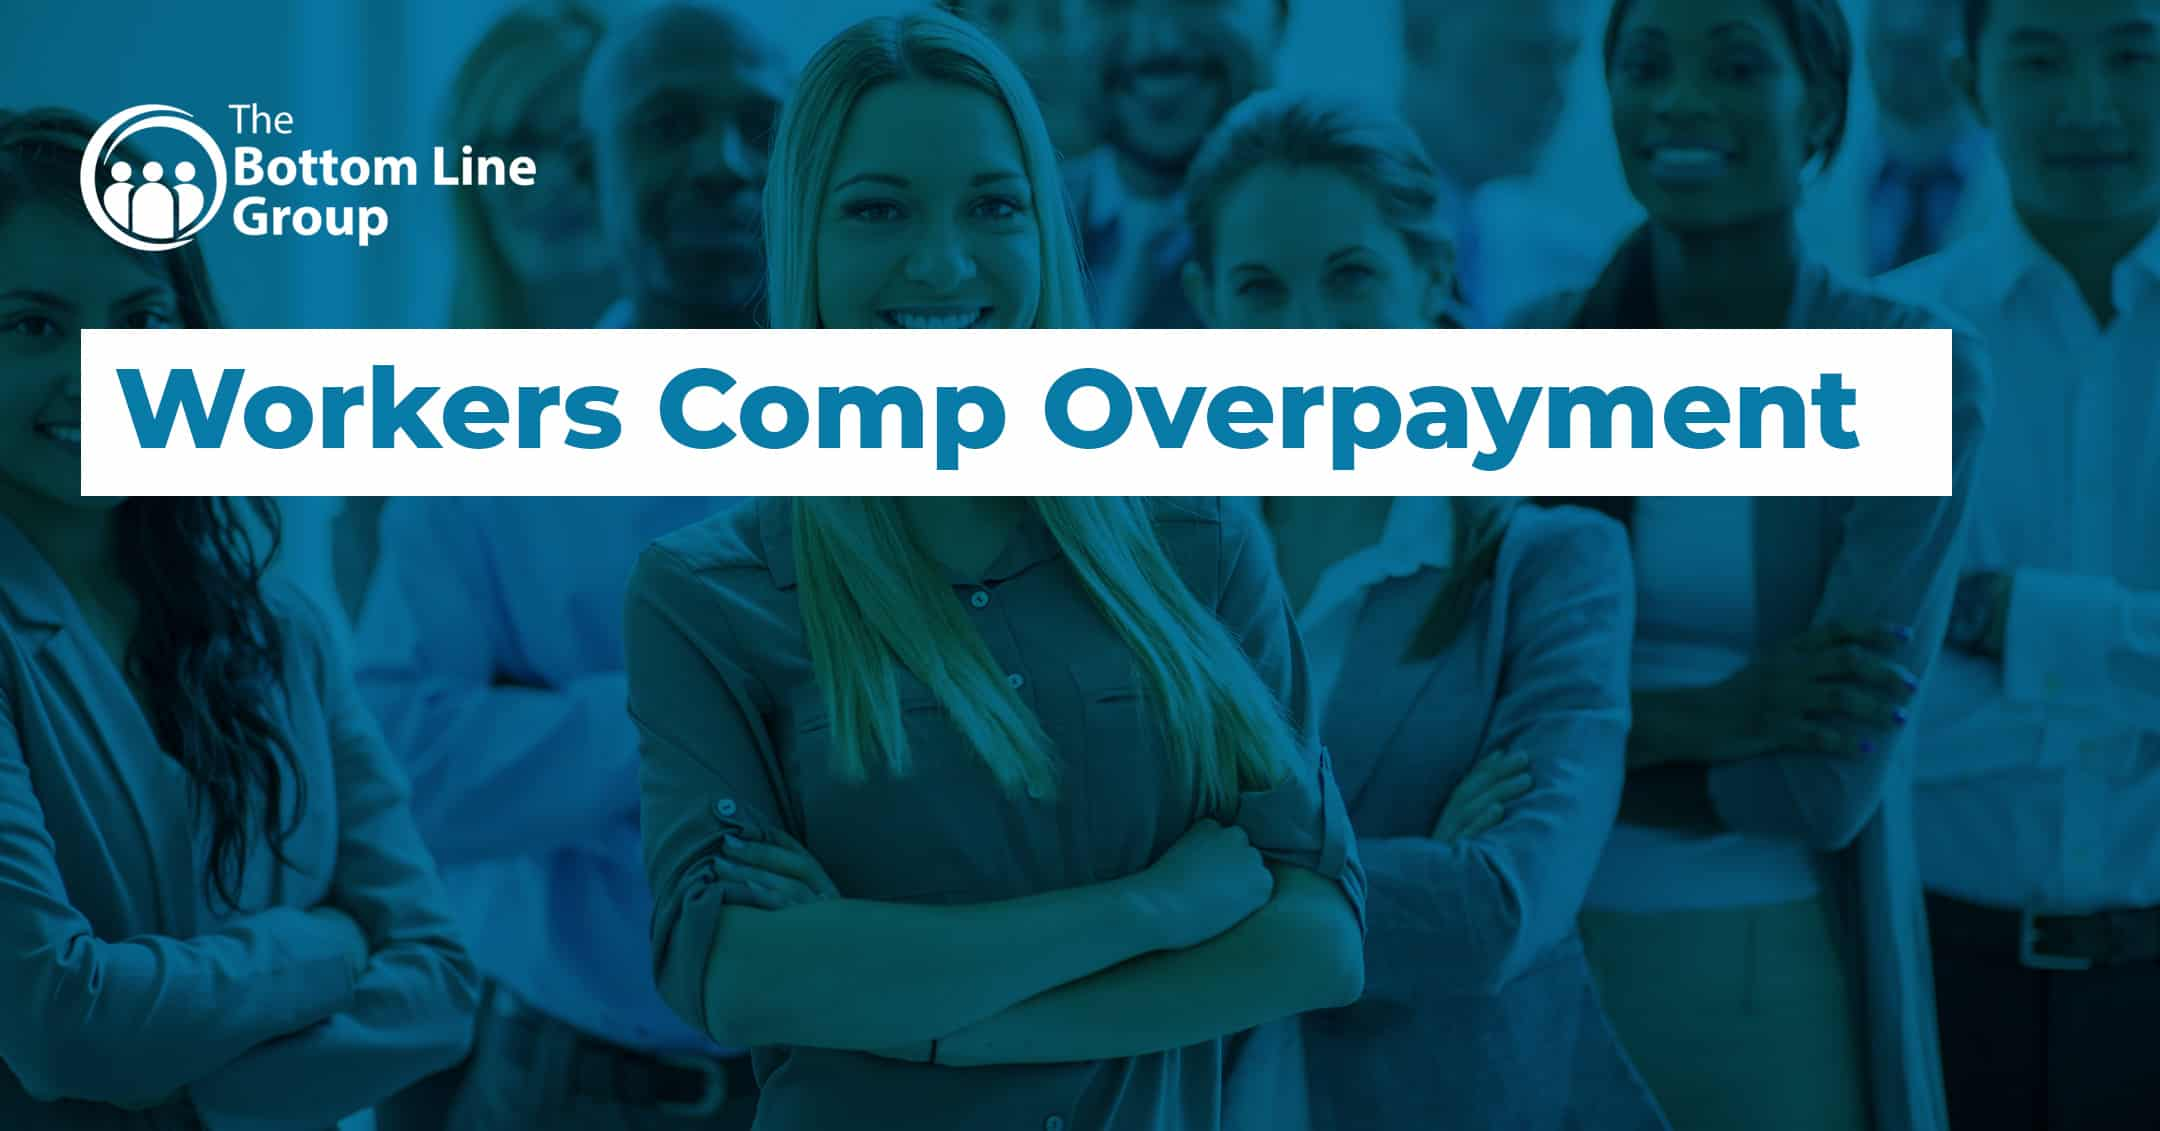 62-(Workers-Comp-Overpayment)1